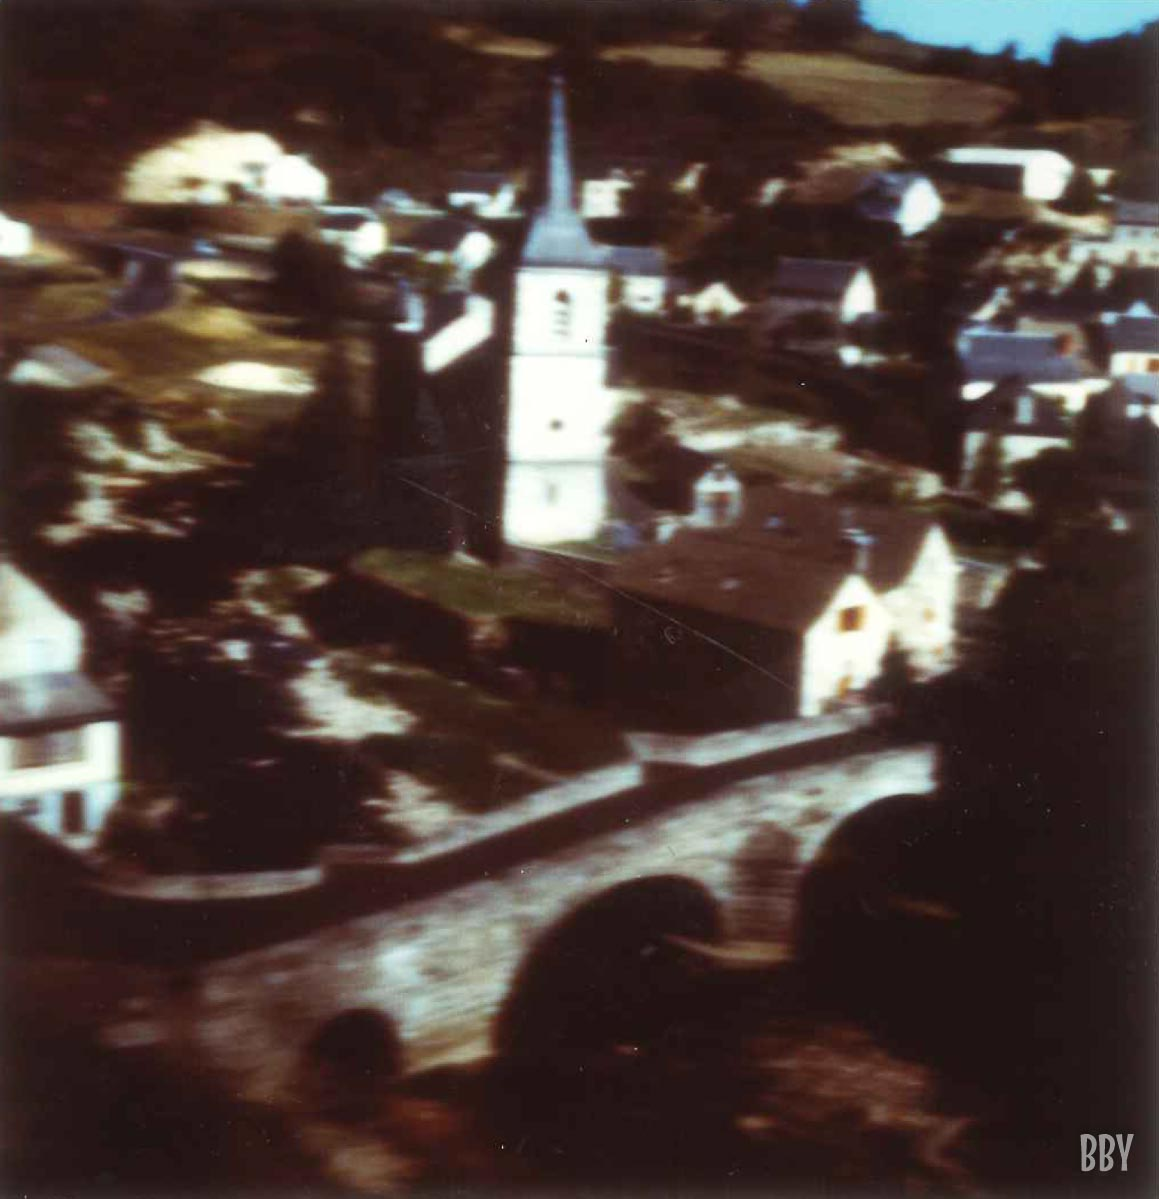 stenope, pinhole, slow photography, chambre noire, village, clocher, pont, bell tower, bridge